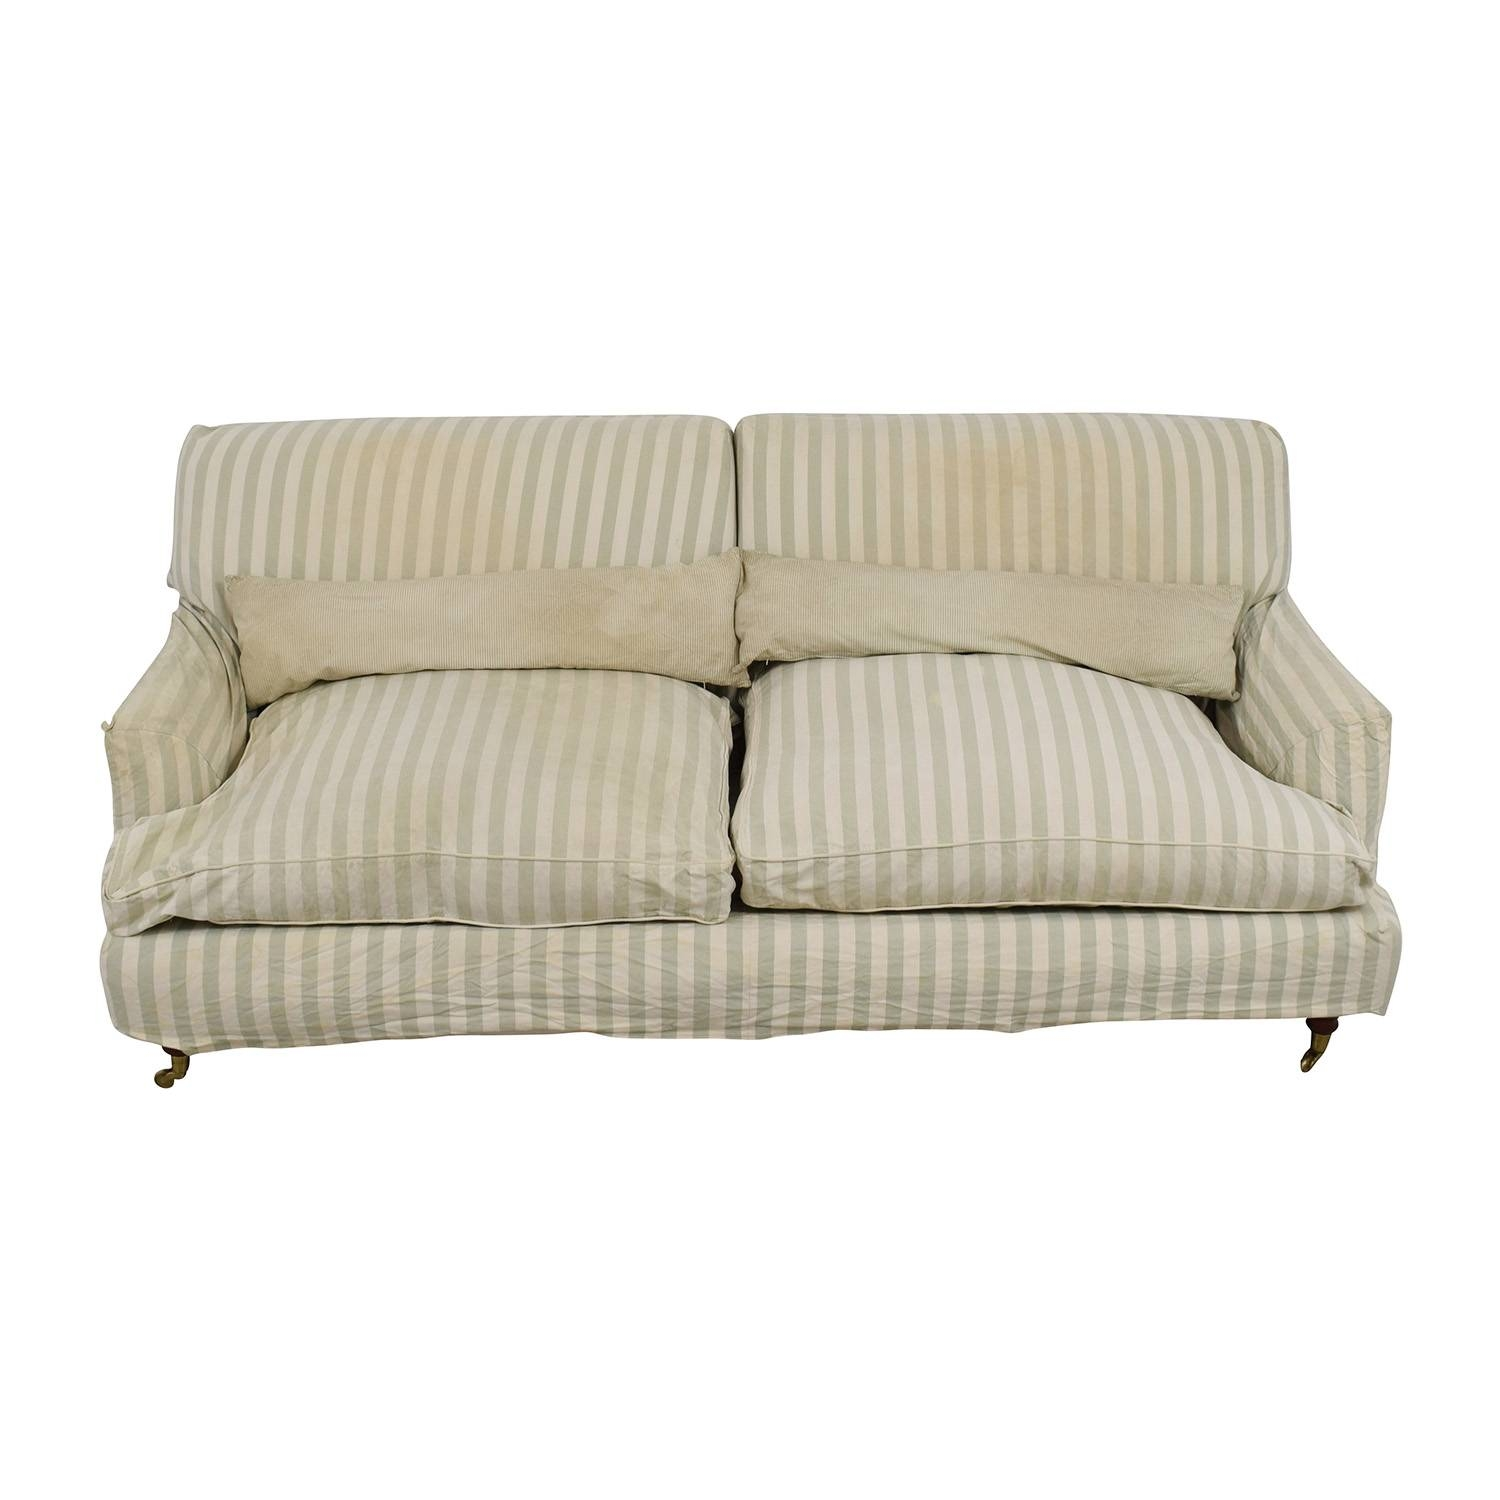 66% Off – Green And White Striped English Roll Arm Sofa / Sofas For Classic English Sofas (View 2 of 30)